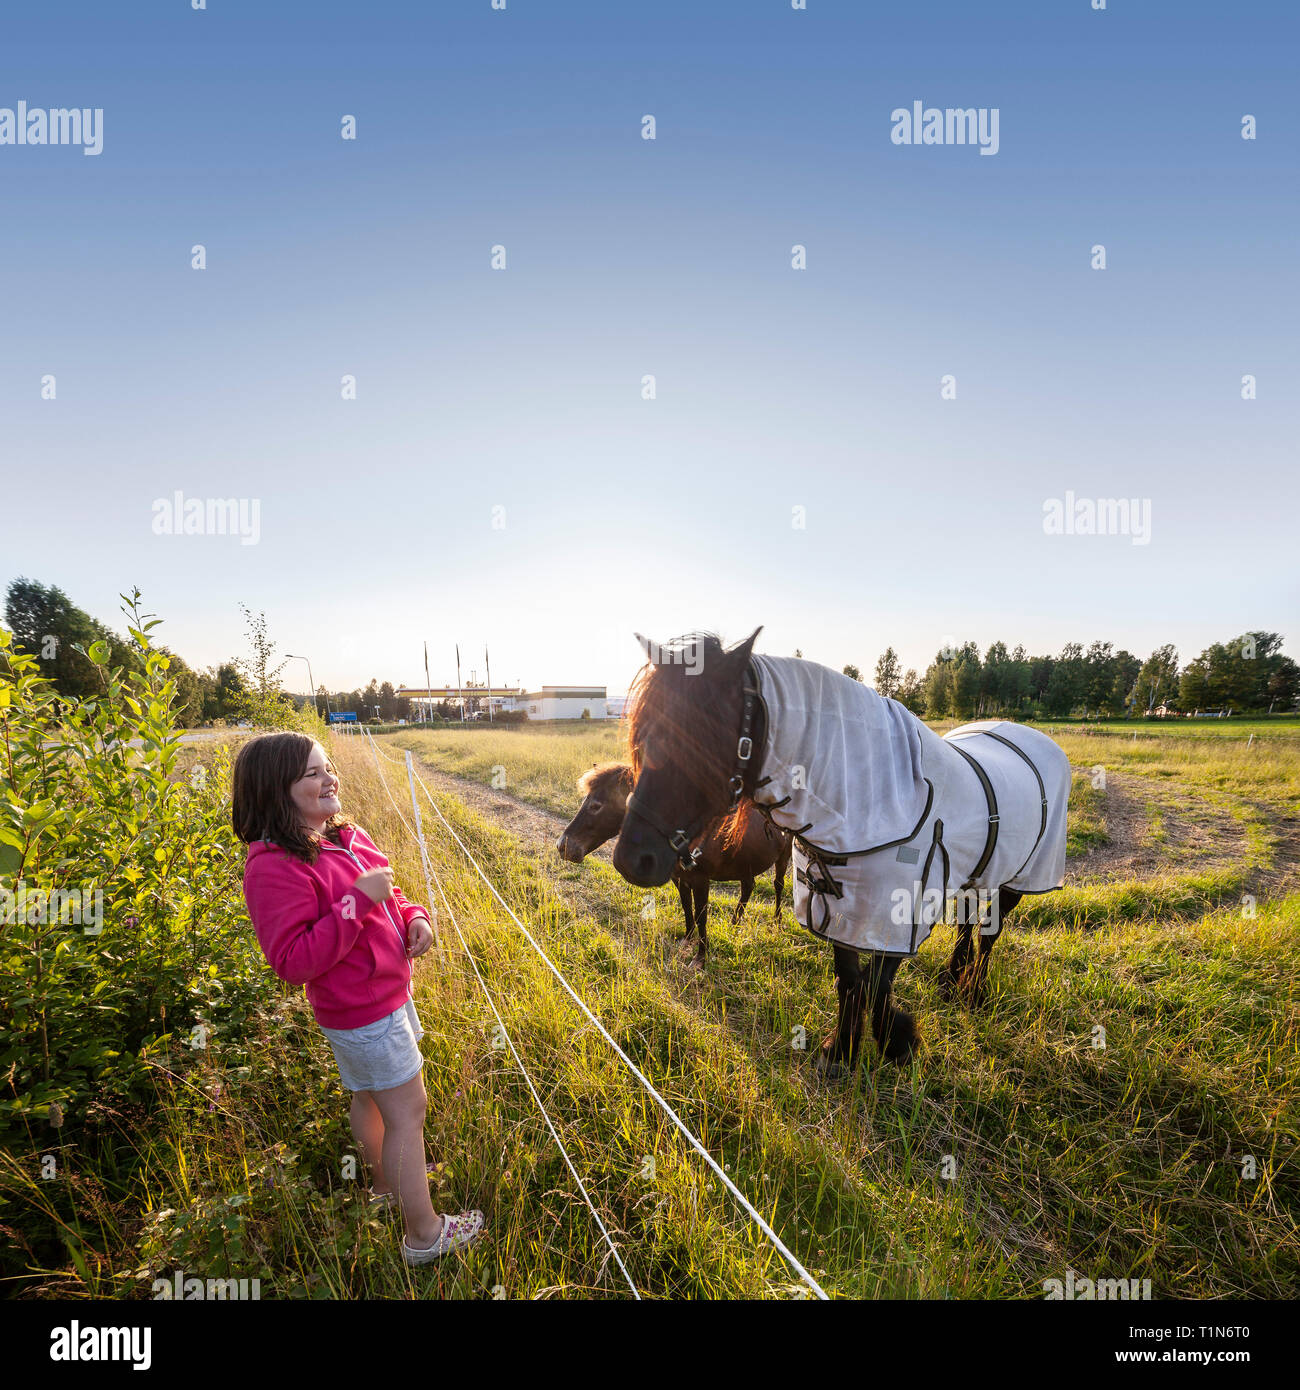 Girl and a horse. Dalarna / Dalecarlia, Sweden, Scandinavia. Stock Photo